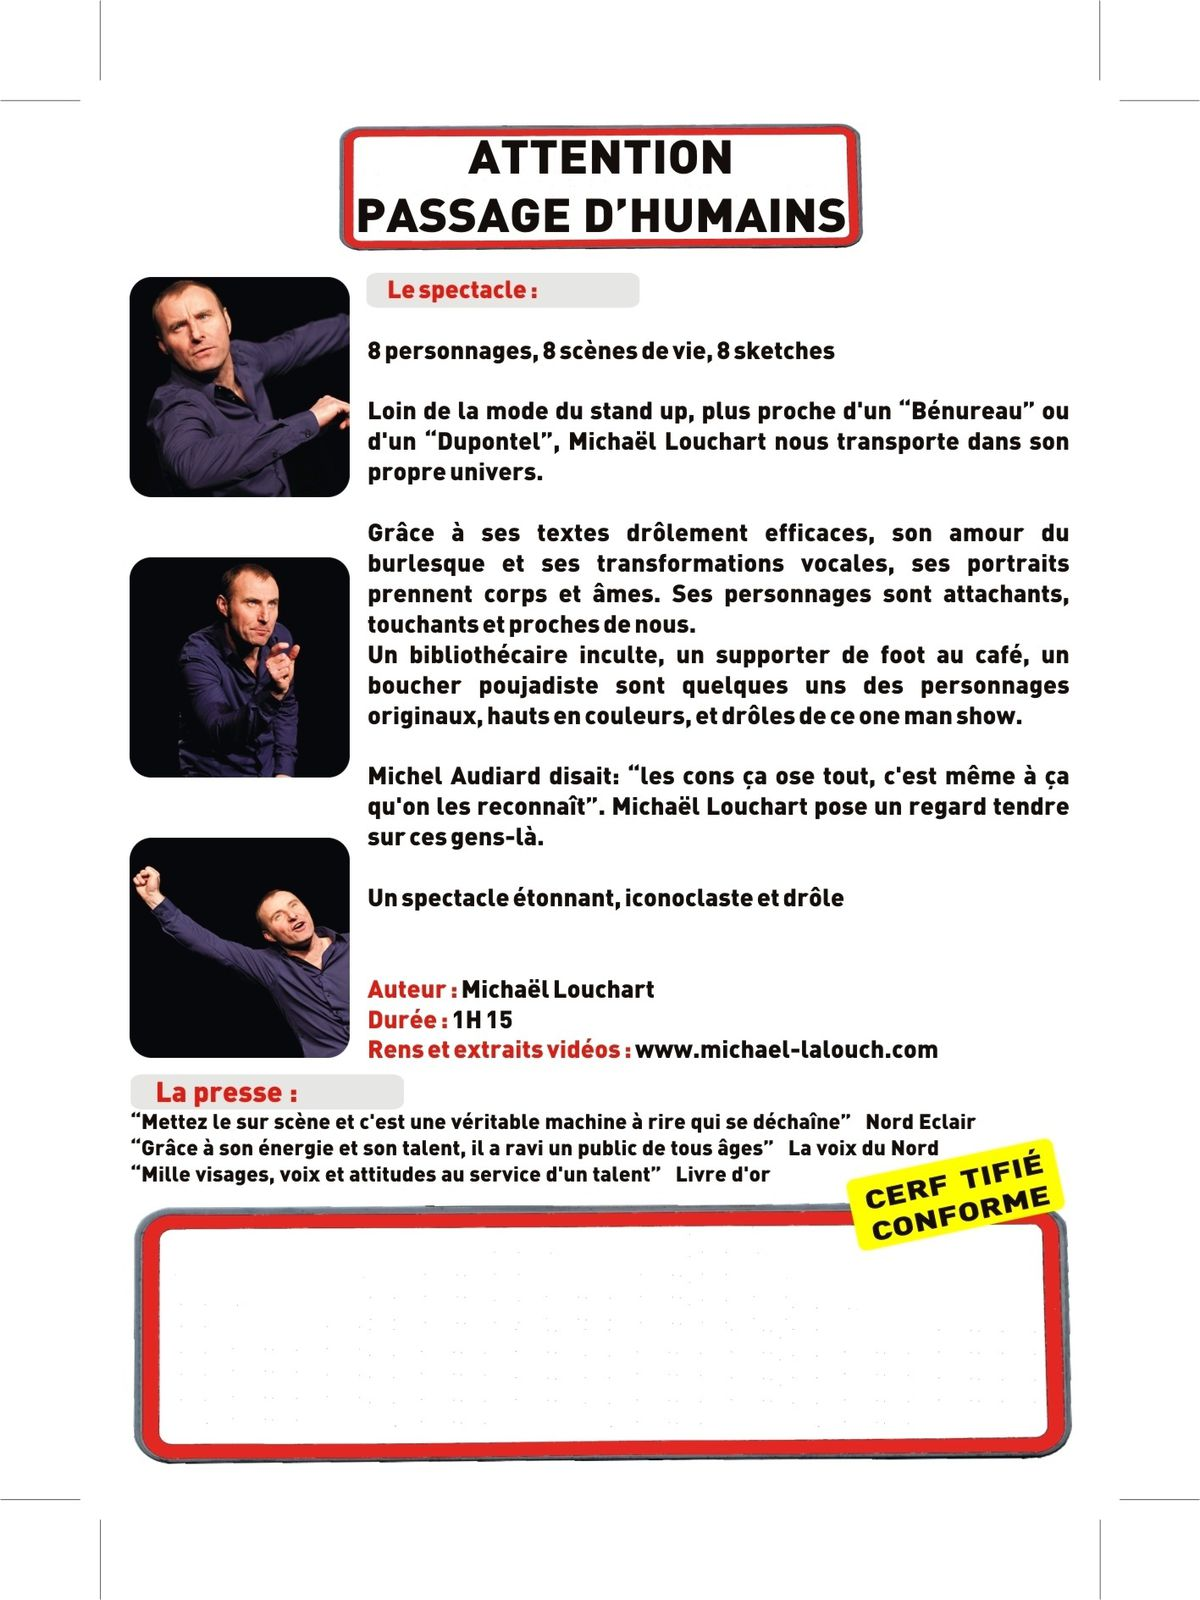 Passage d'humains Flyer - Michaël Louchart